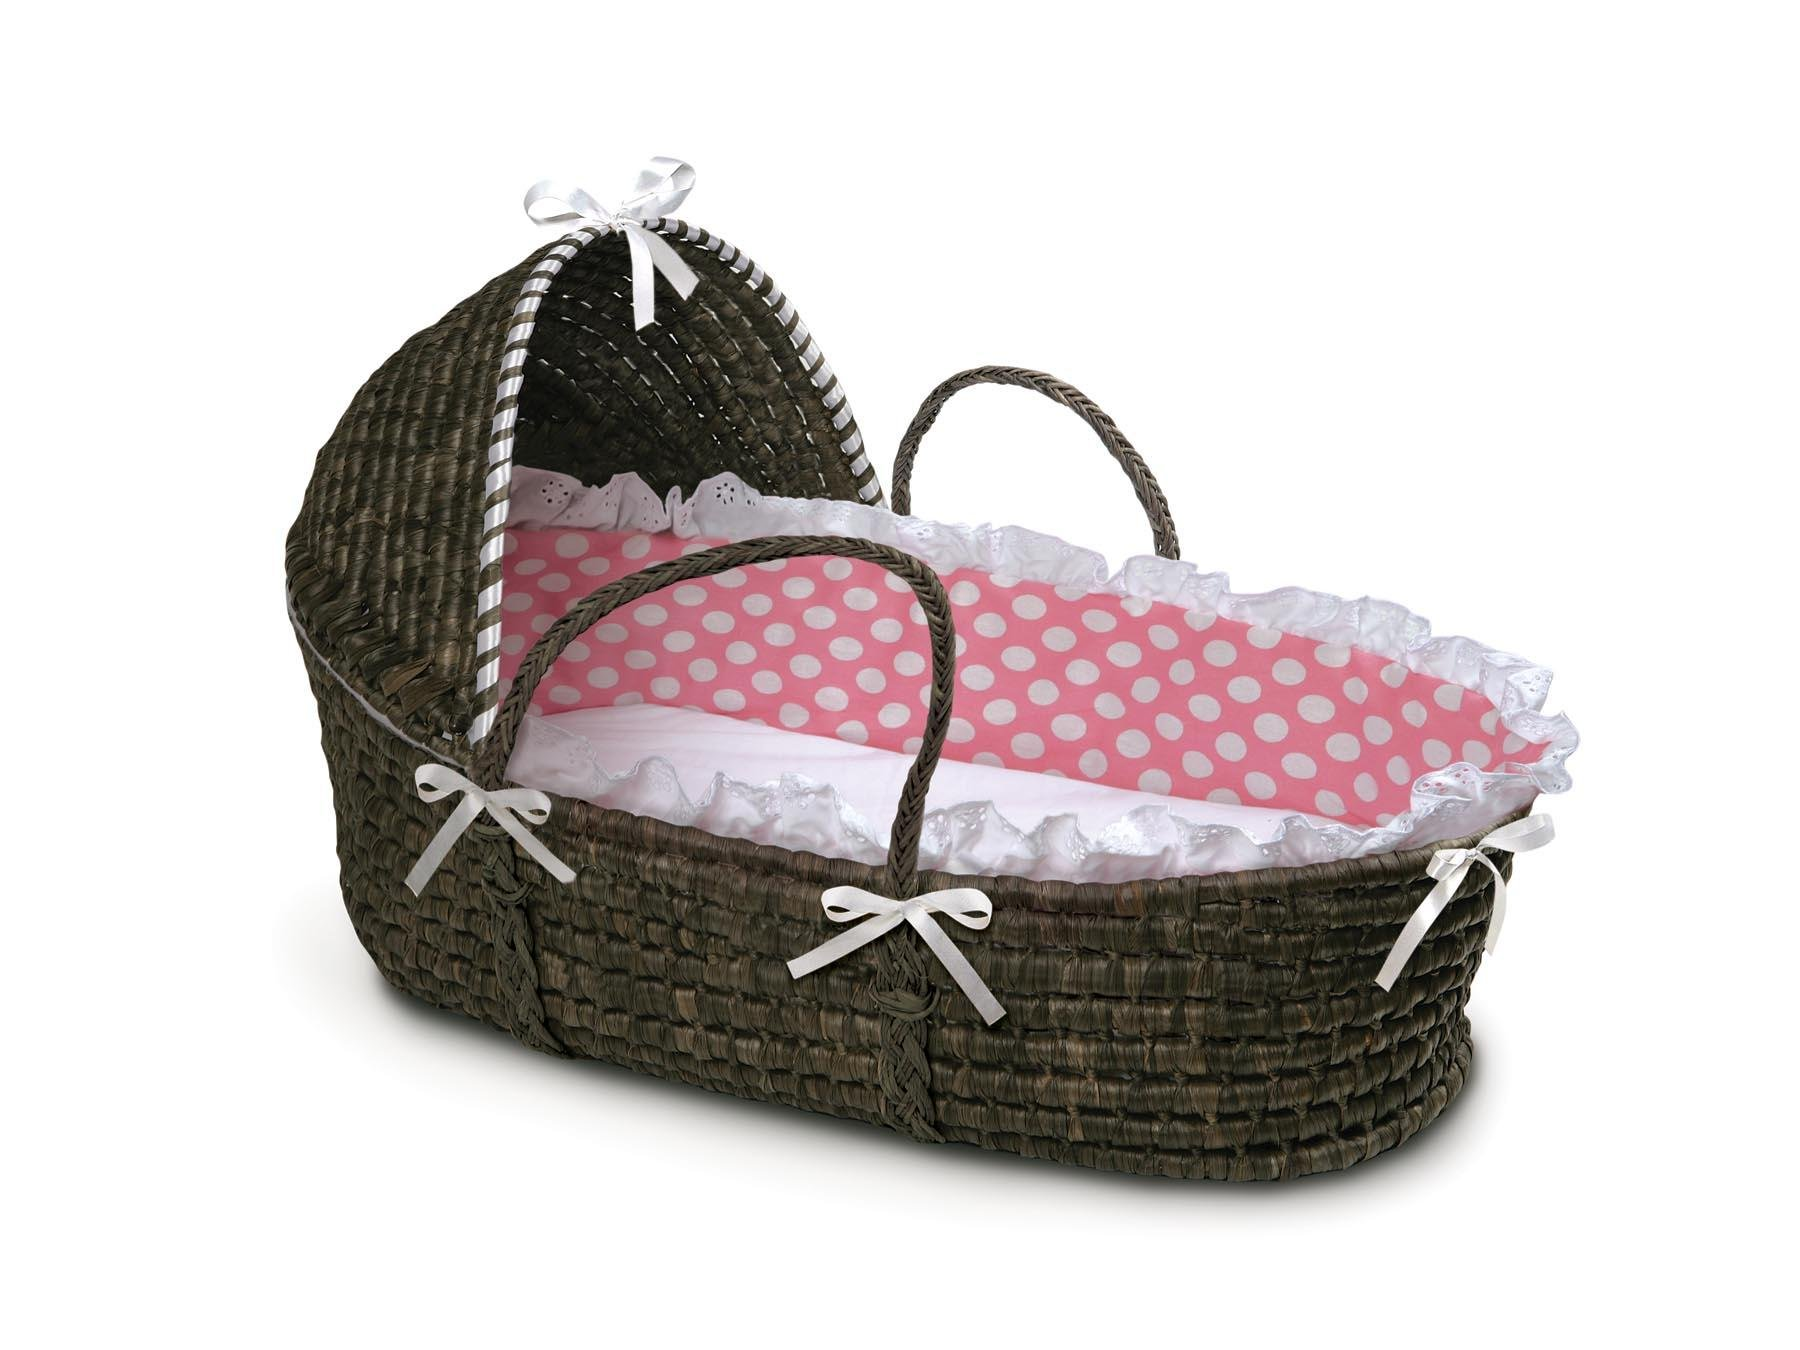 Hooded Moses Basket Espresso/Pink Polka Dot